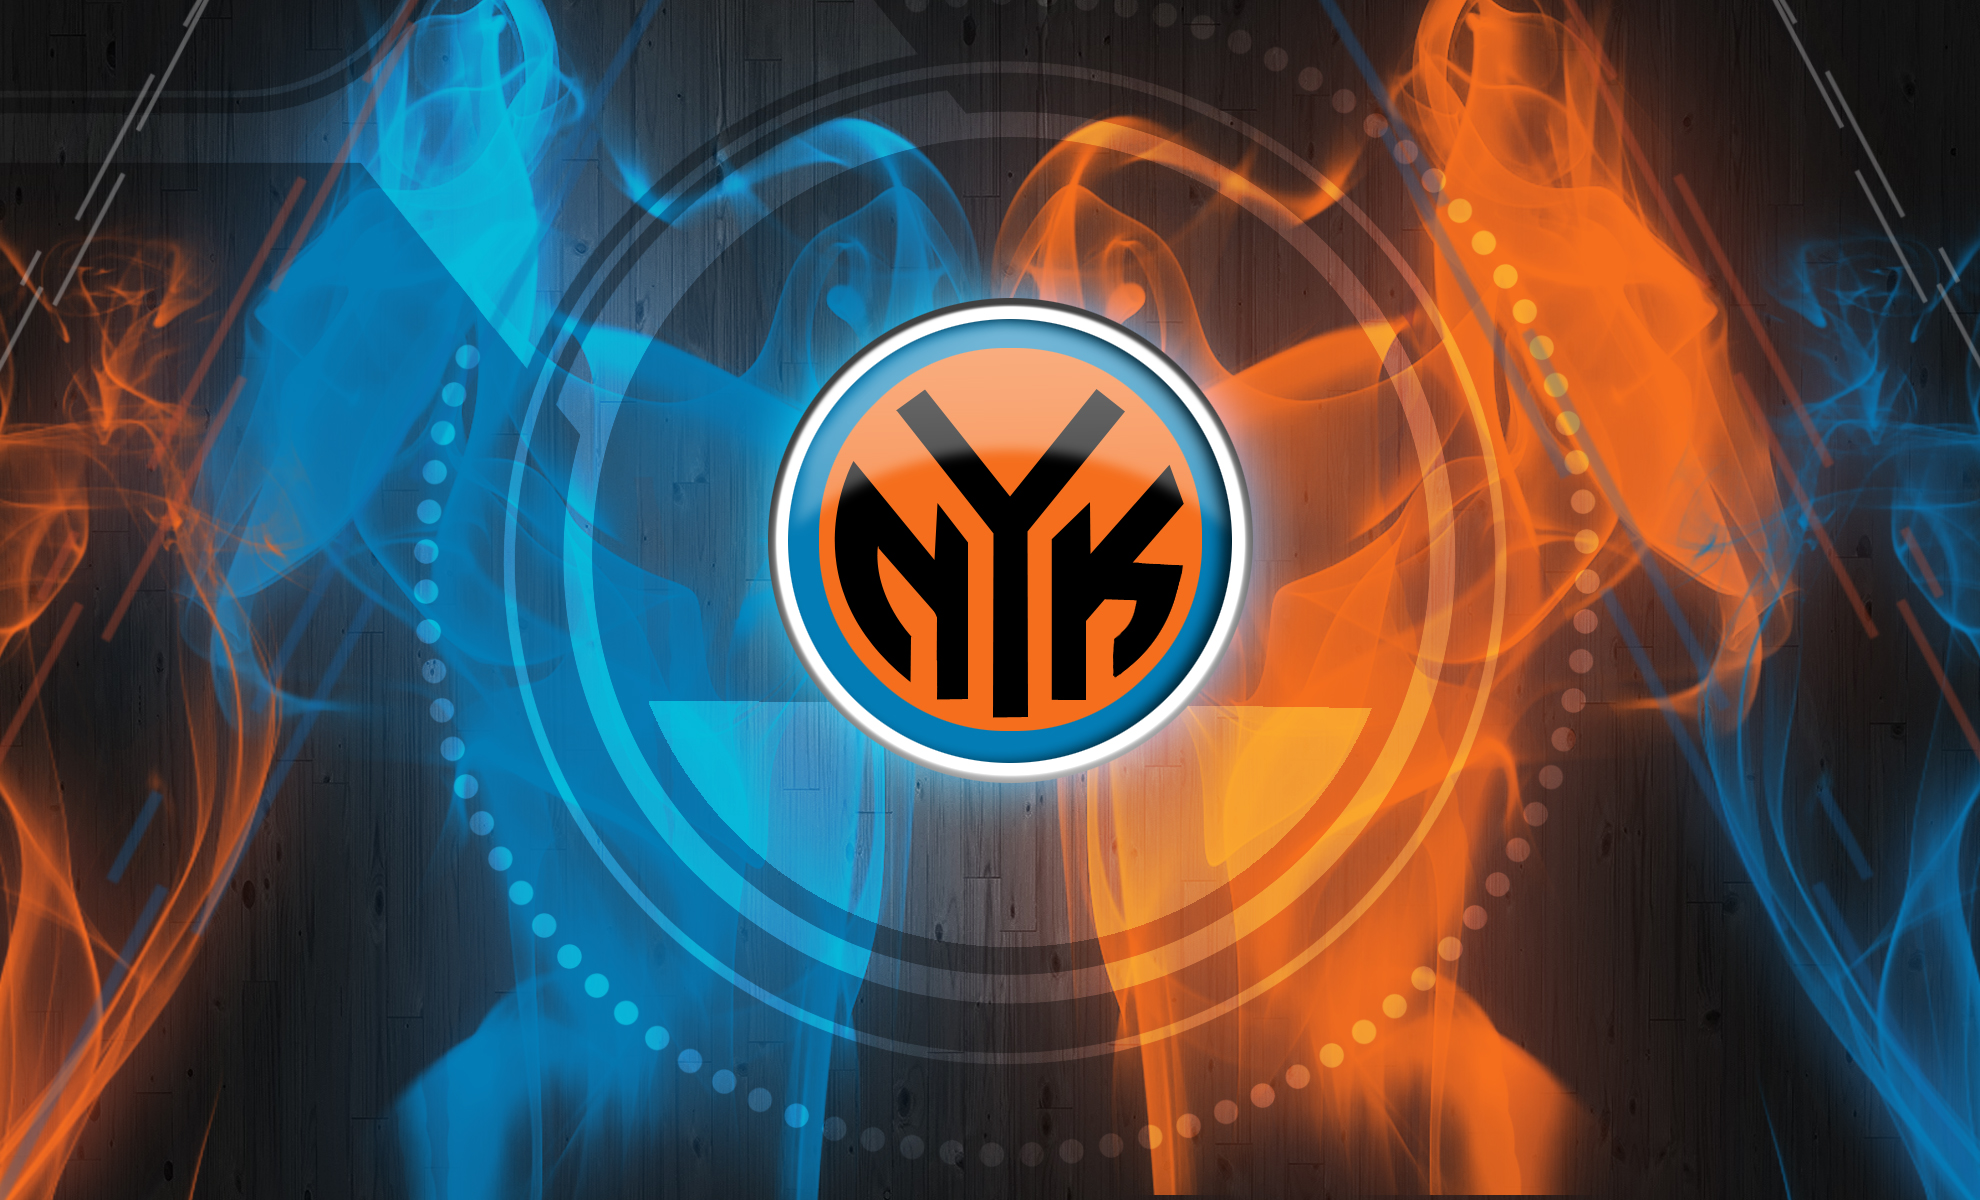 New York Knicks 6817 1980x1200 px HDWallSourcecom